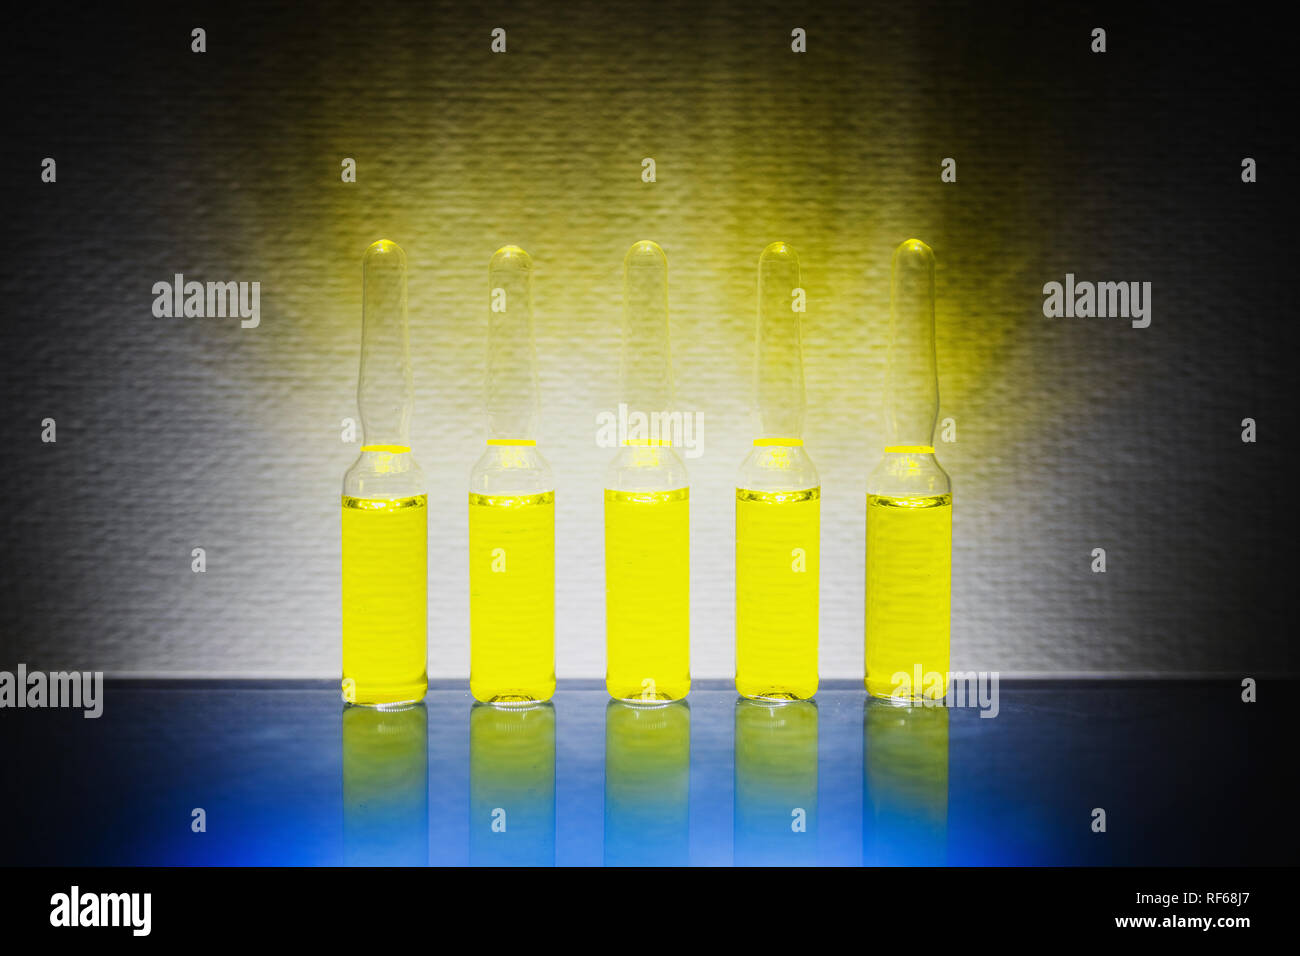 yellow narcotic drugs, chemicals, vitamins in ampoules on a white background. Stock Photo